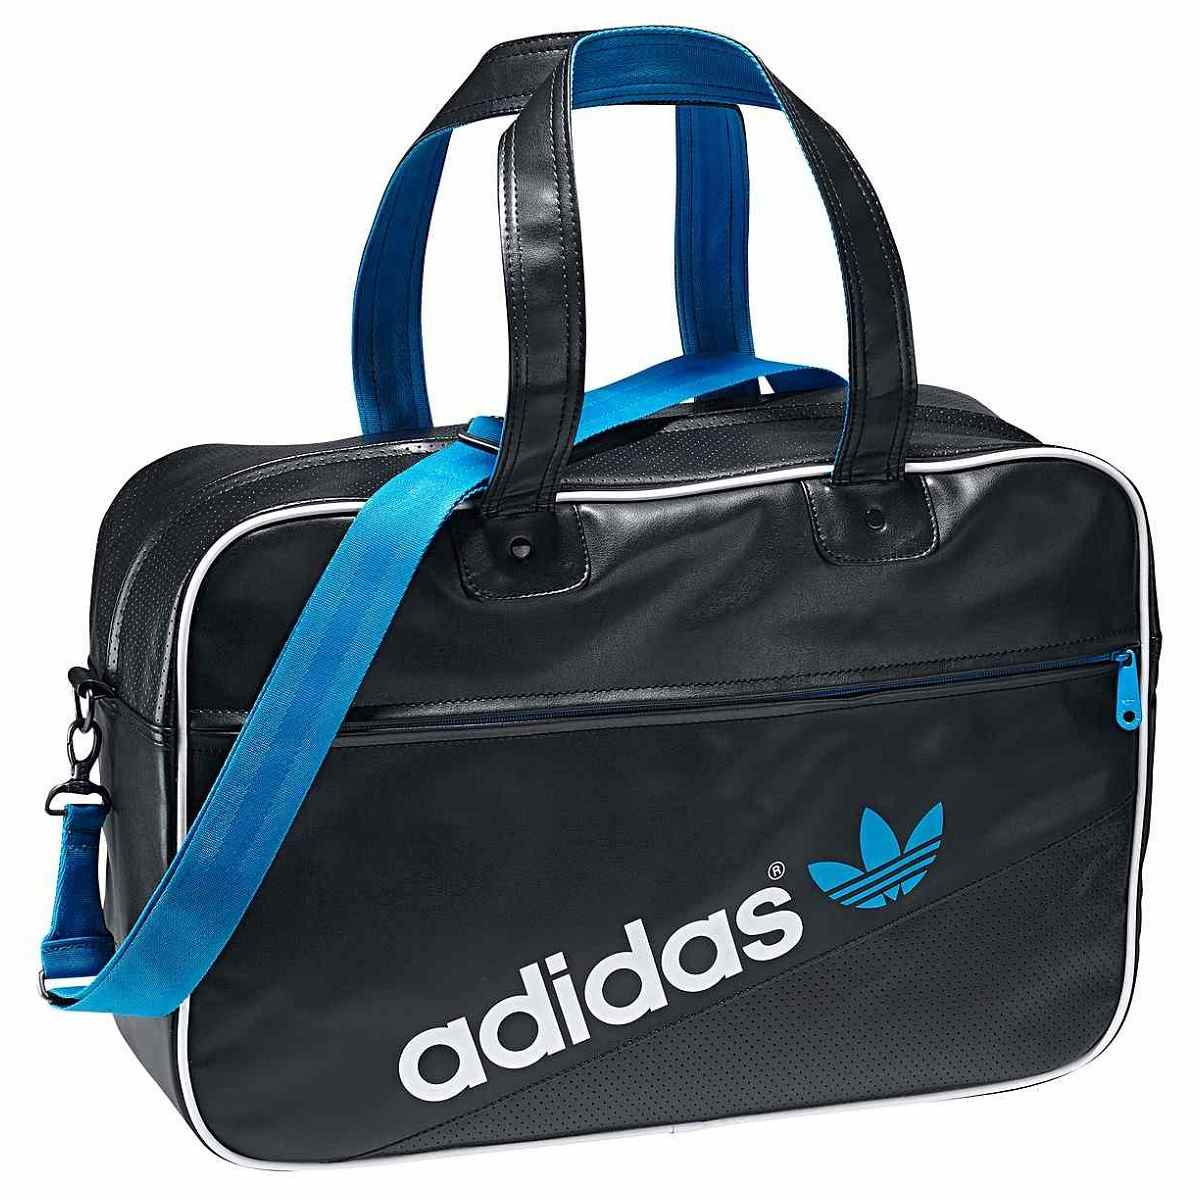 adidas adicolor holdall tasche schultertasche wei blau ebay. Black Bedroom Furniture Sets. Home Design Ideas